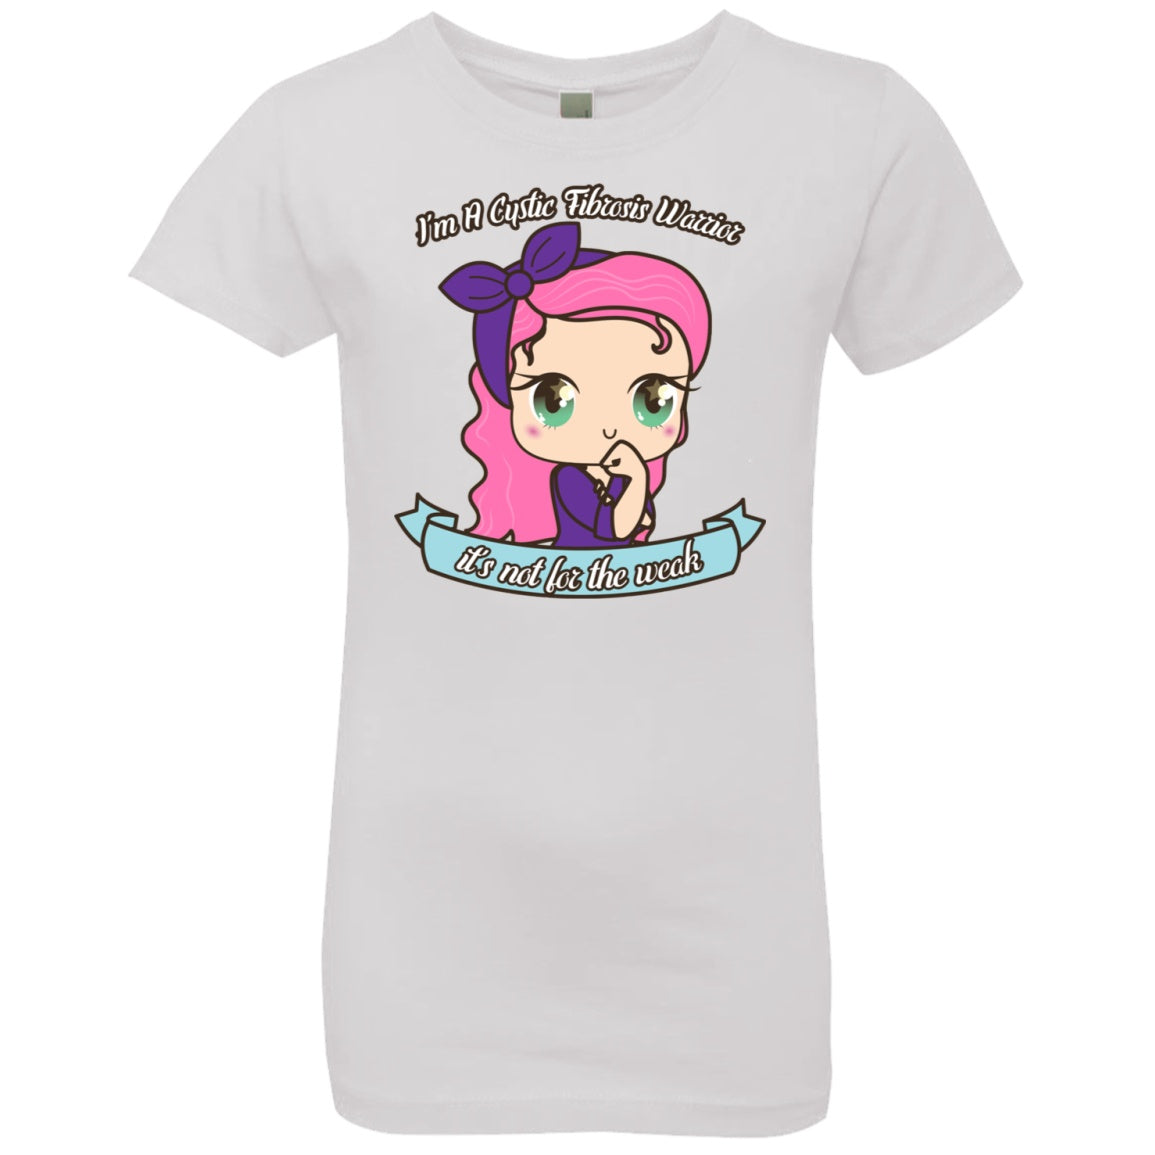 Cute Cystic Fibrosis Warrior Girls' Princess T-Shirt